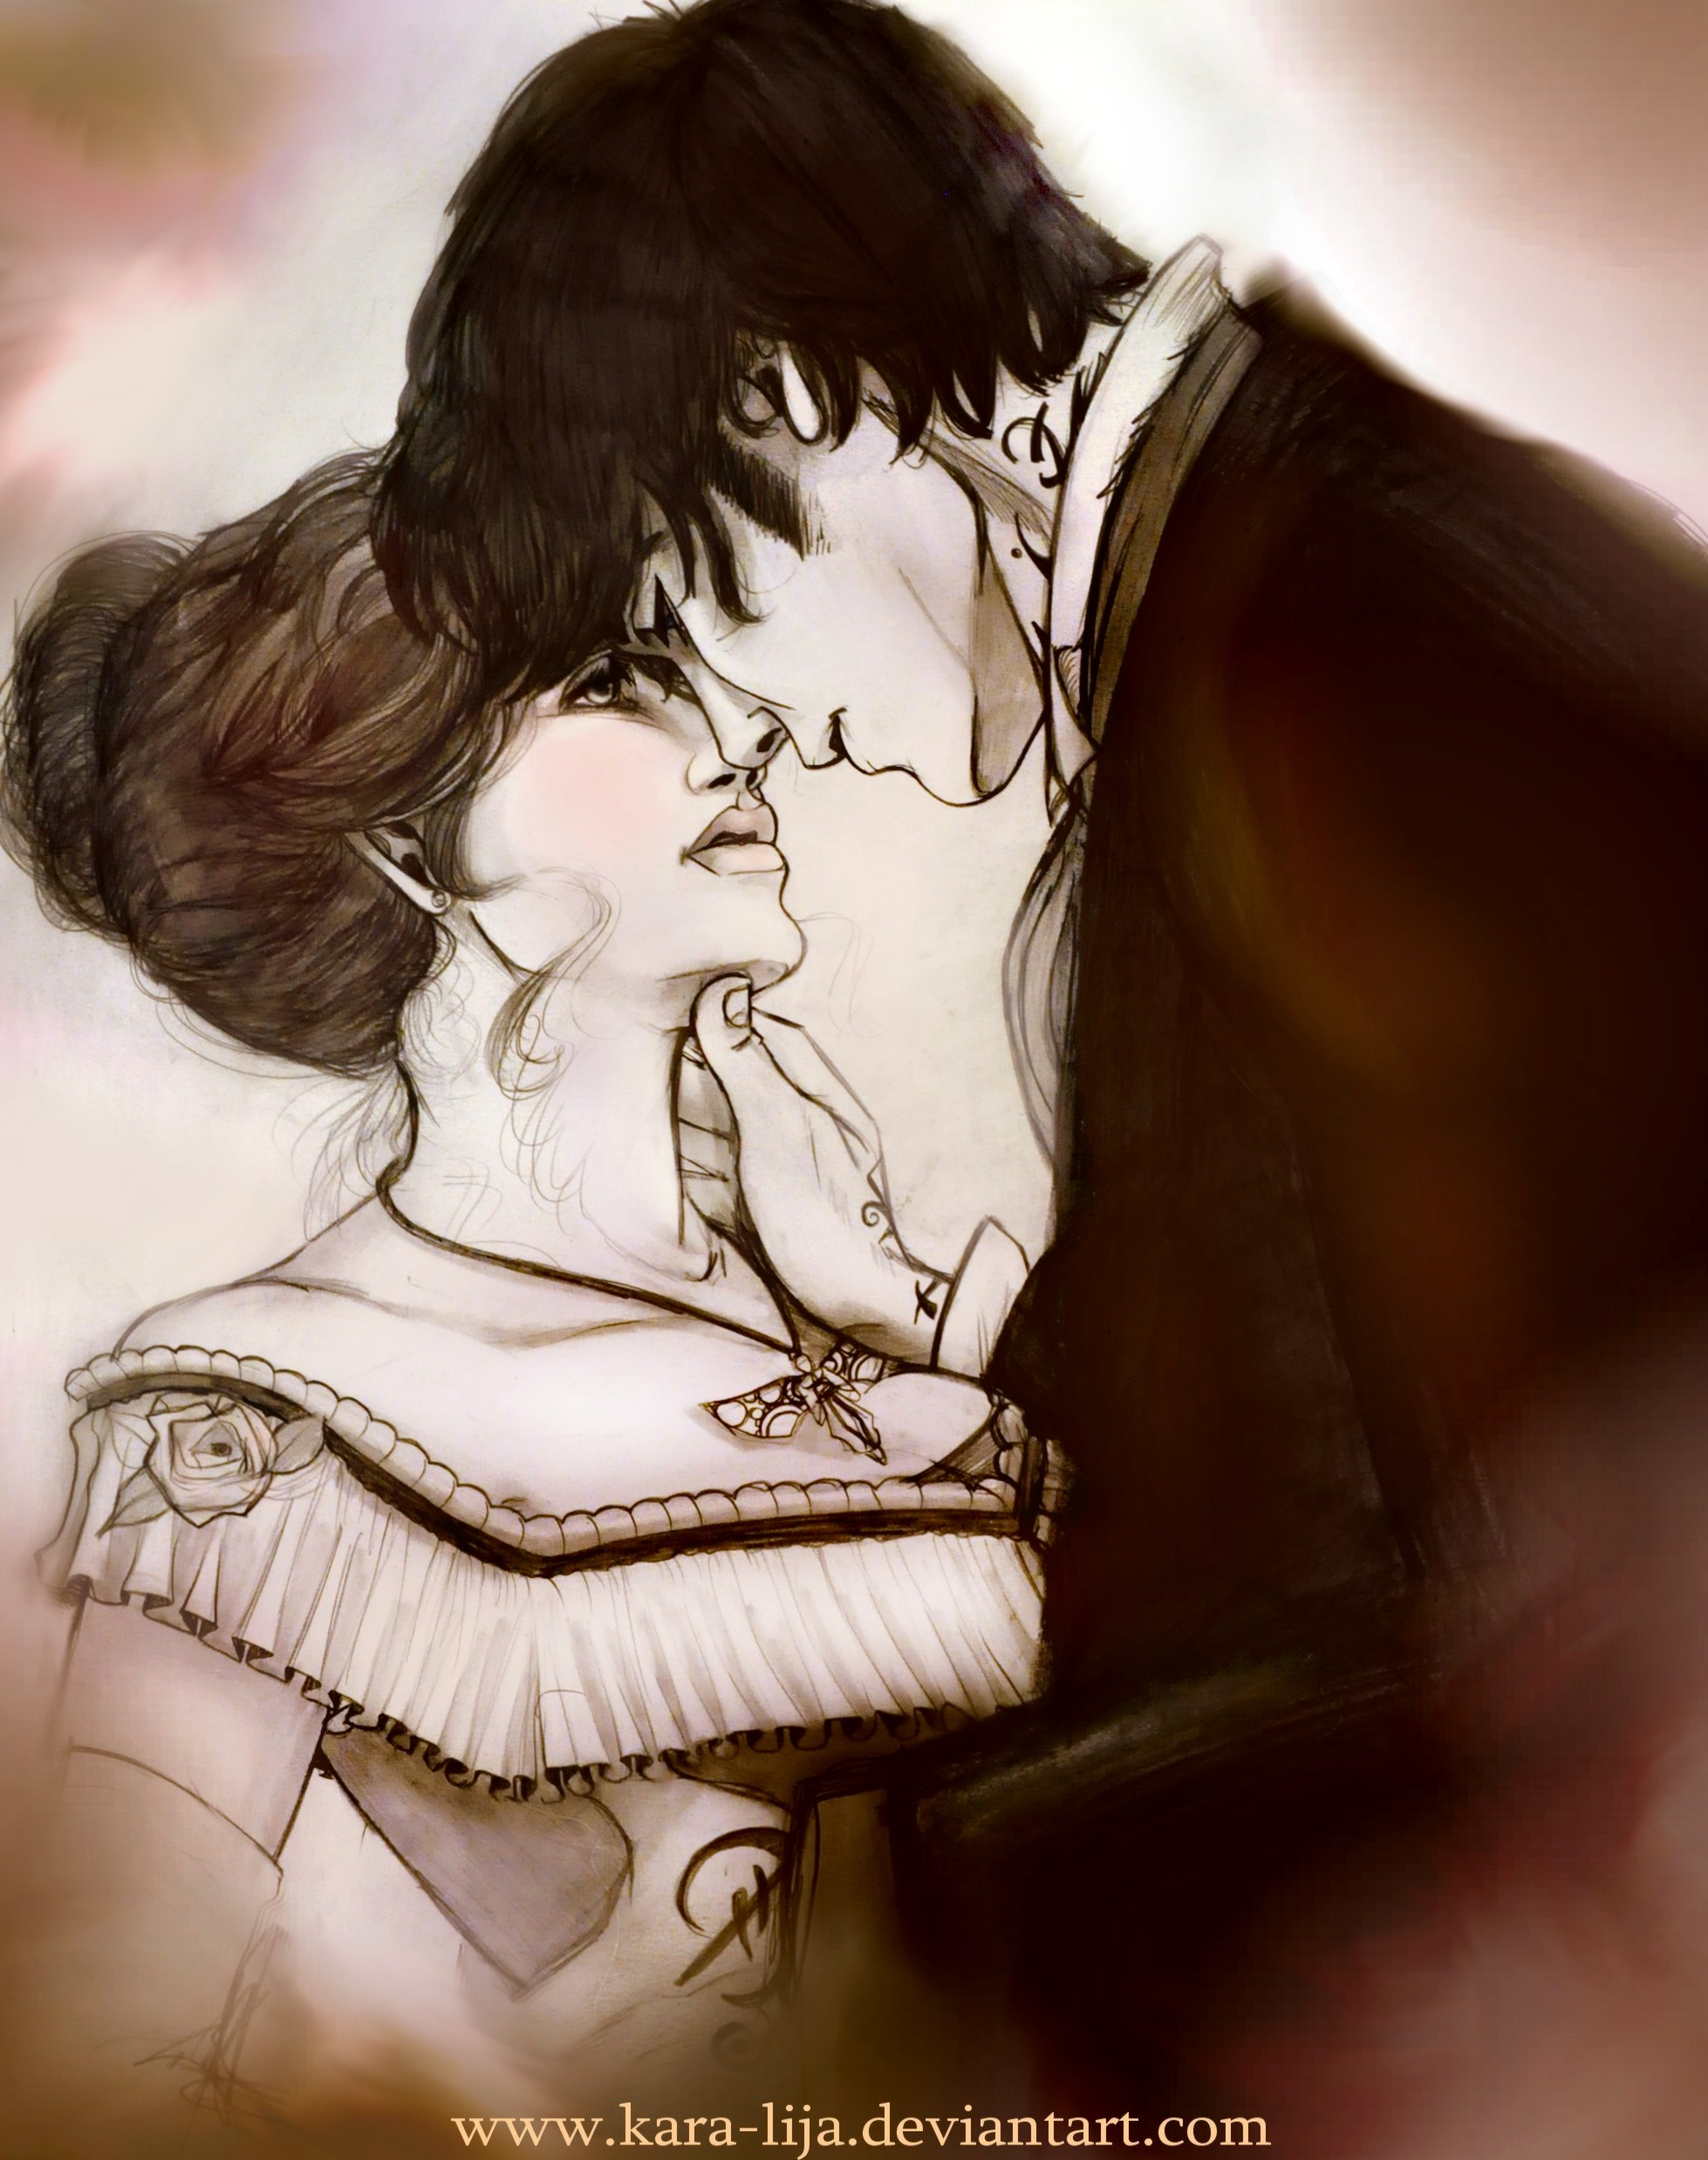 Tessa - Tessa Gray Fan Art (29339727) - Fanpop